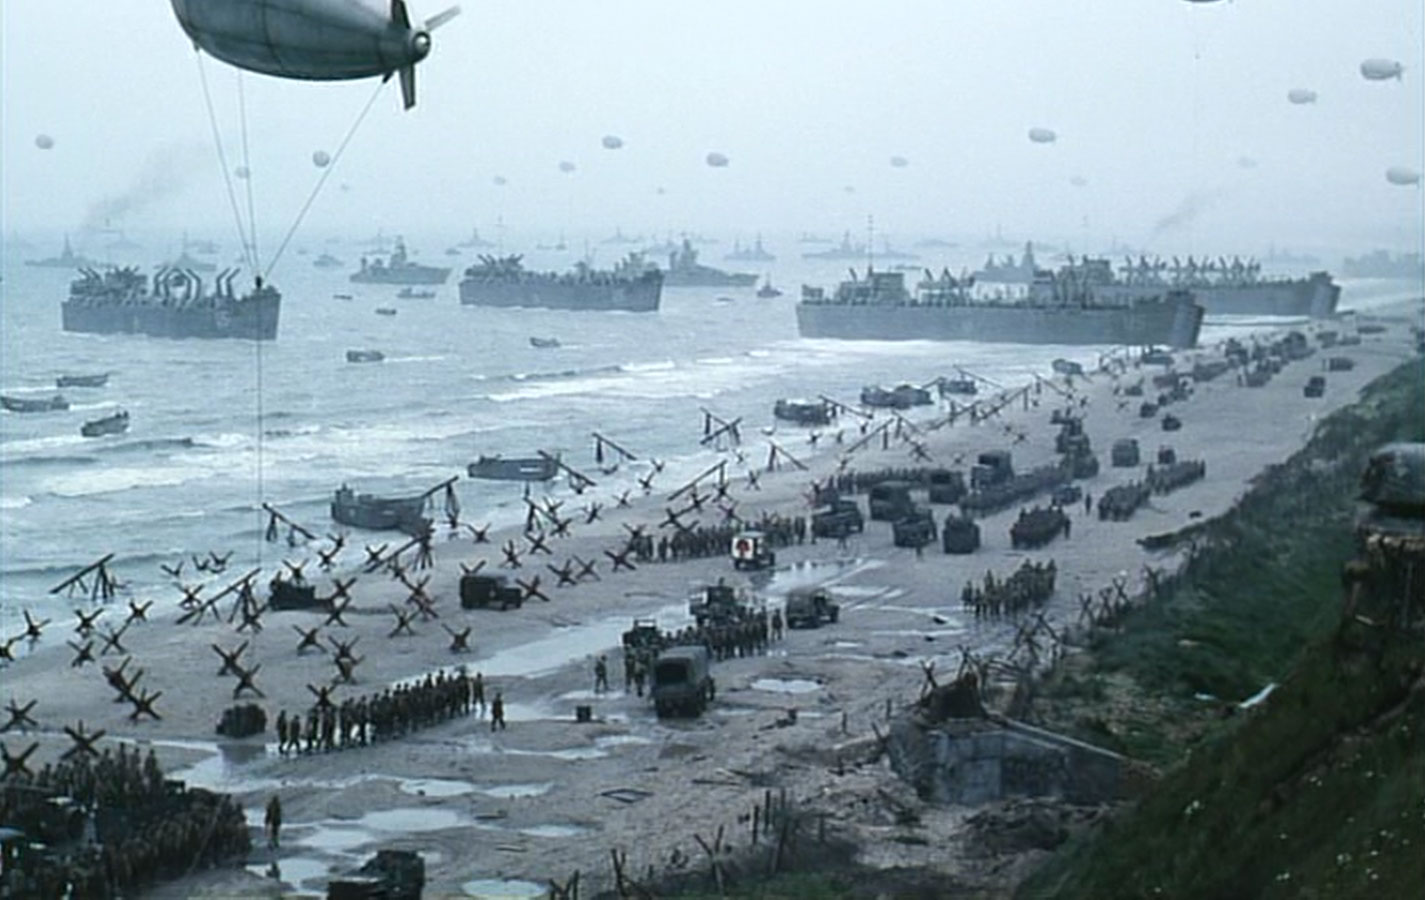 Essay on d-day invasion